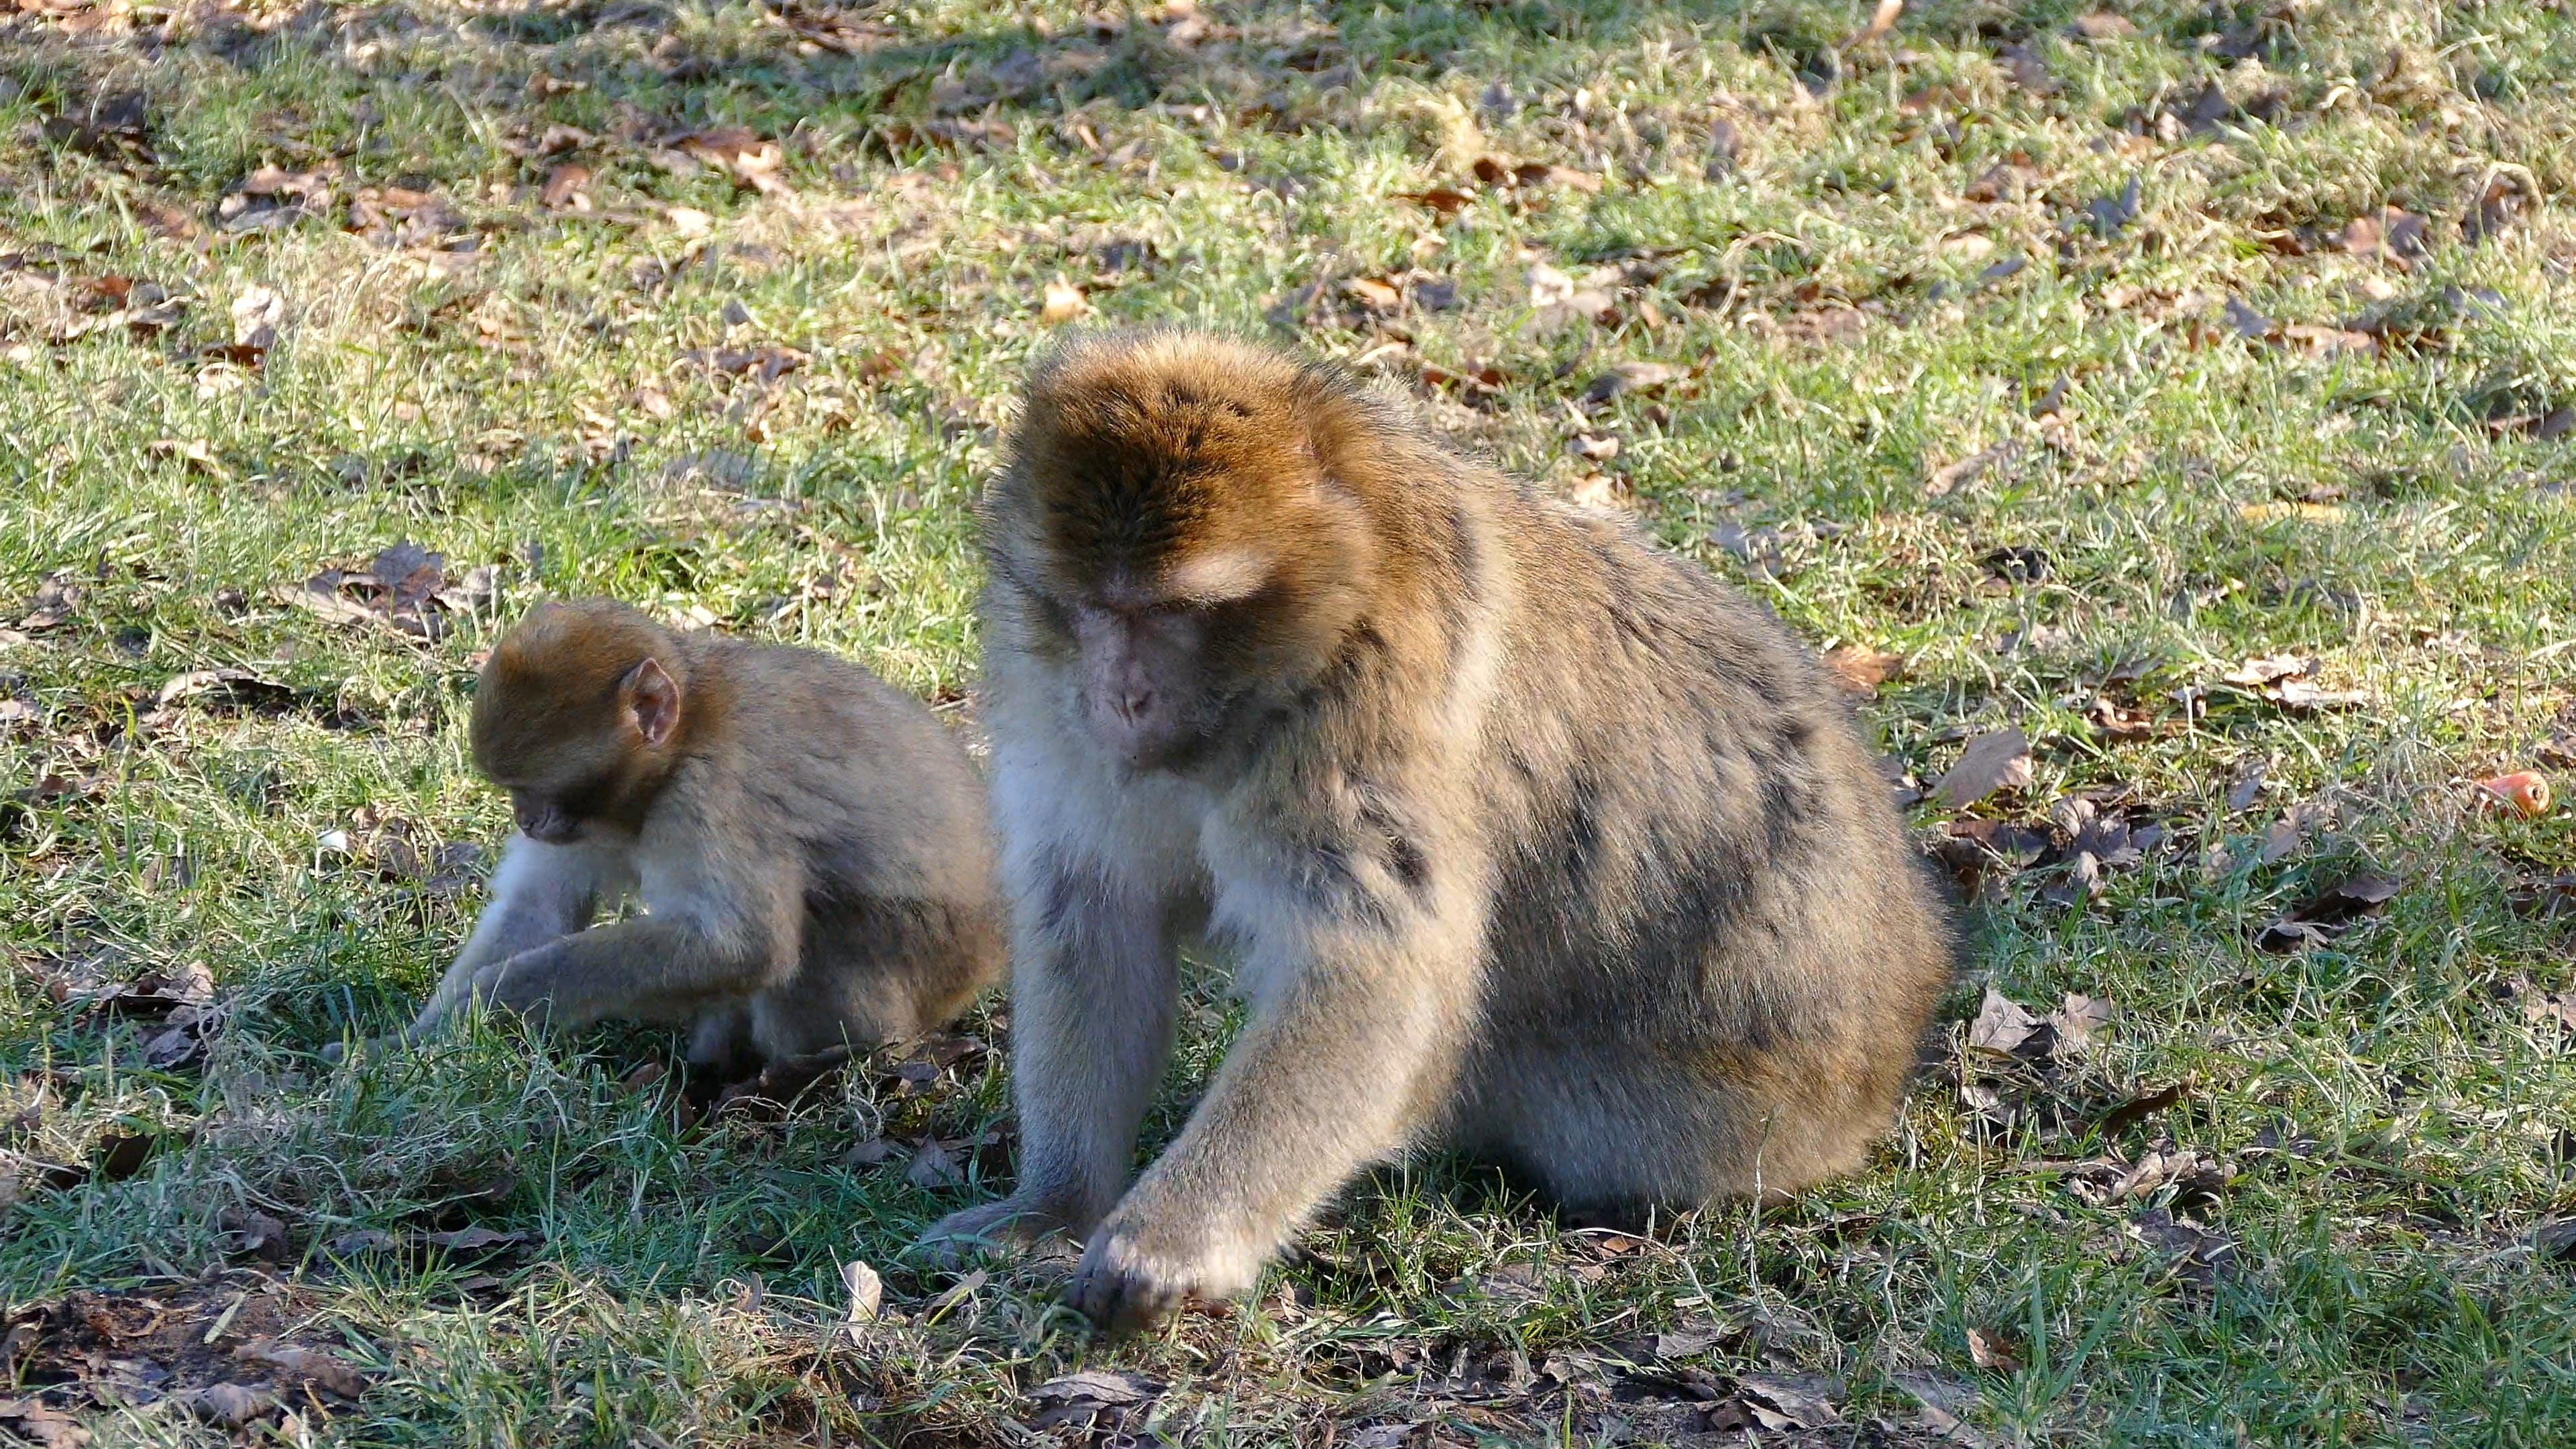 Monkeys Feeding On Grass